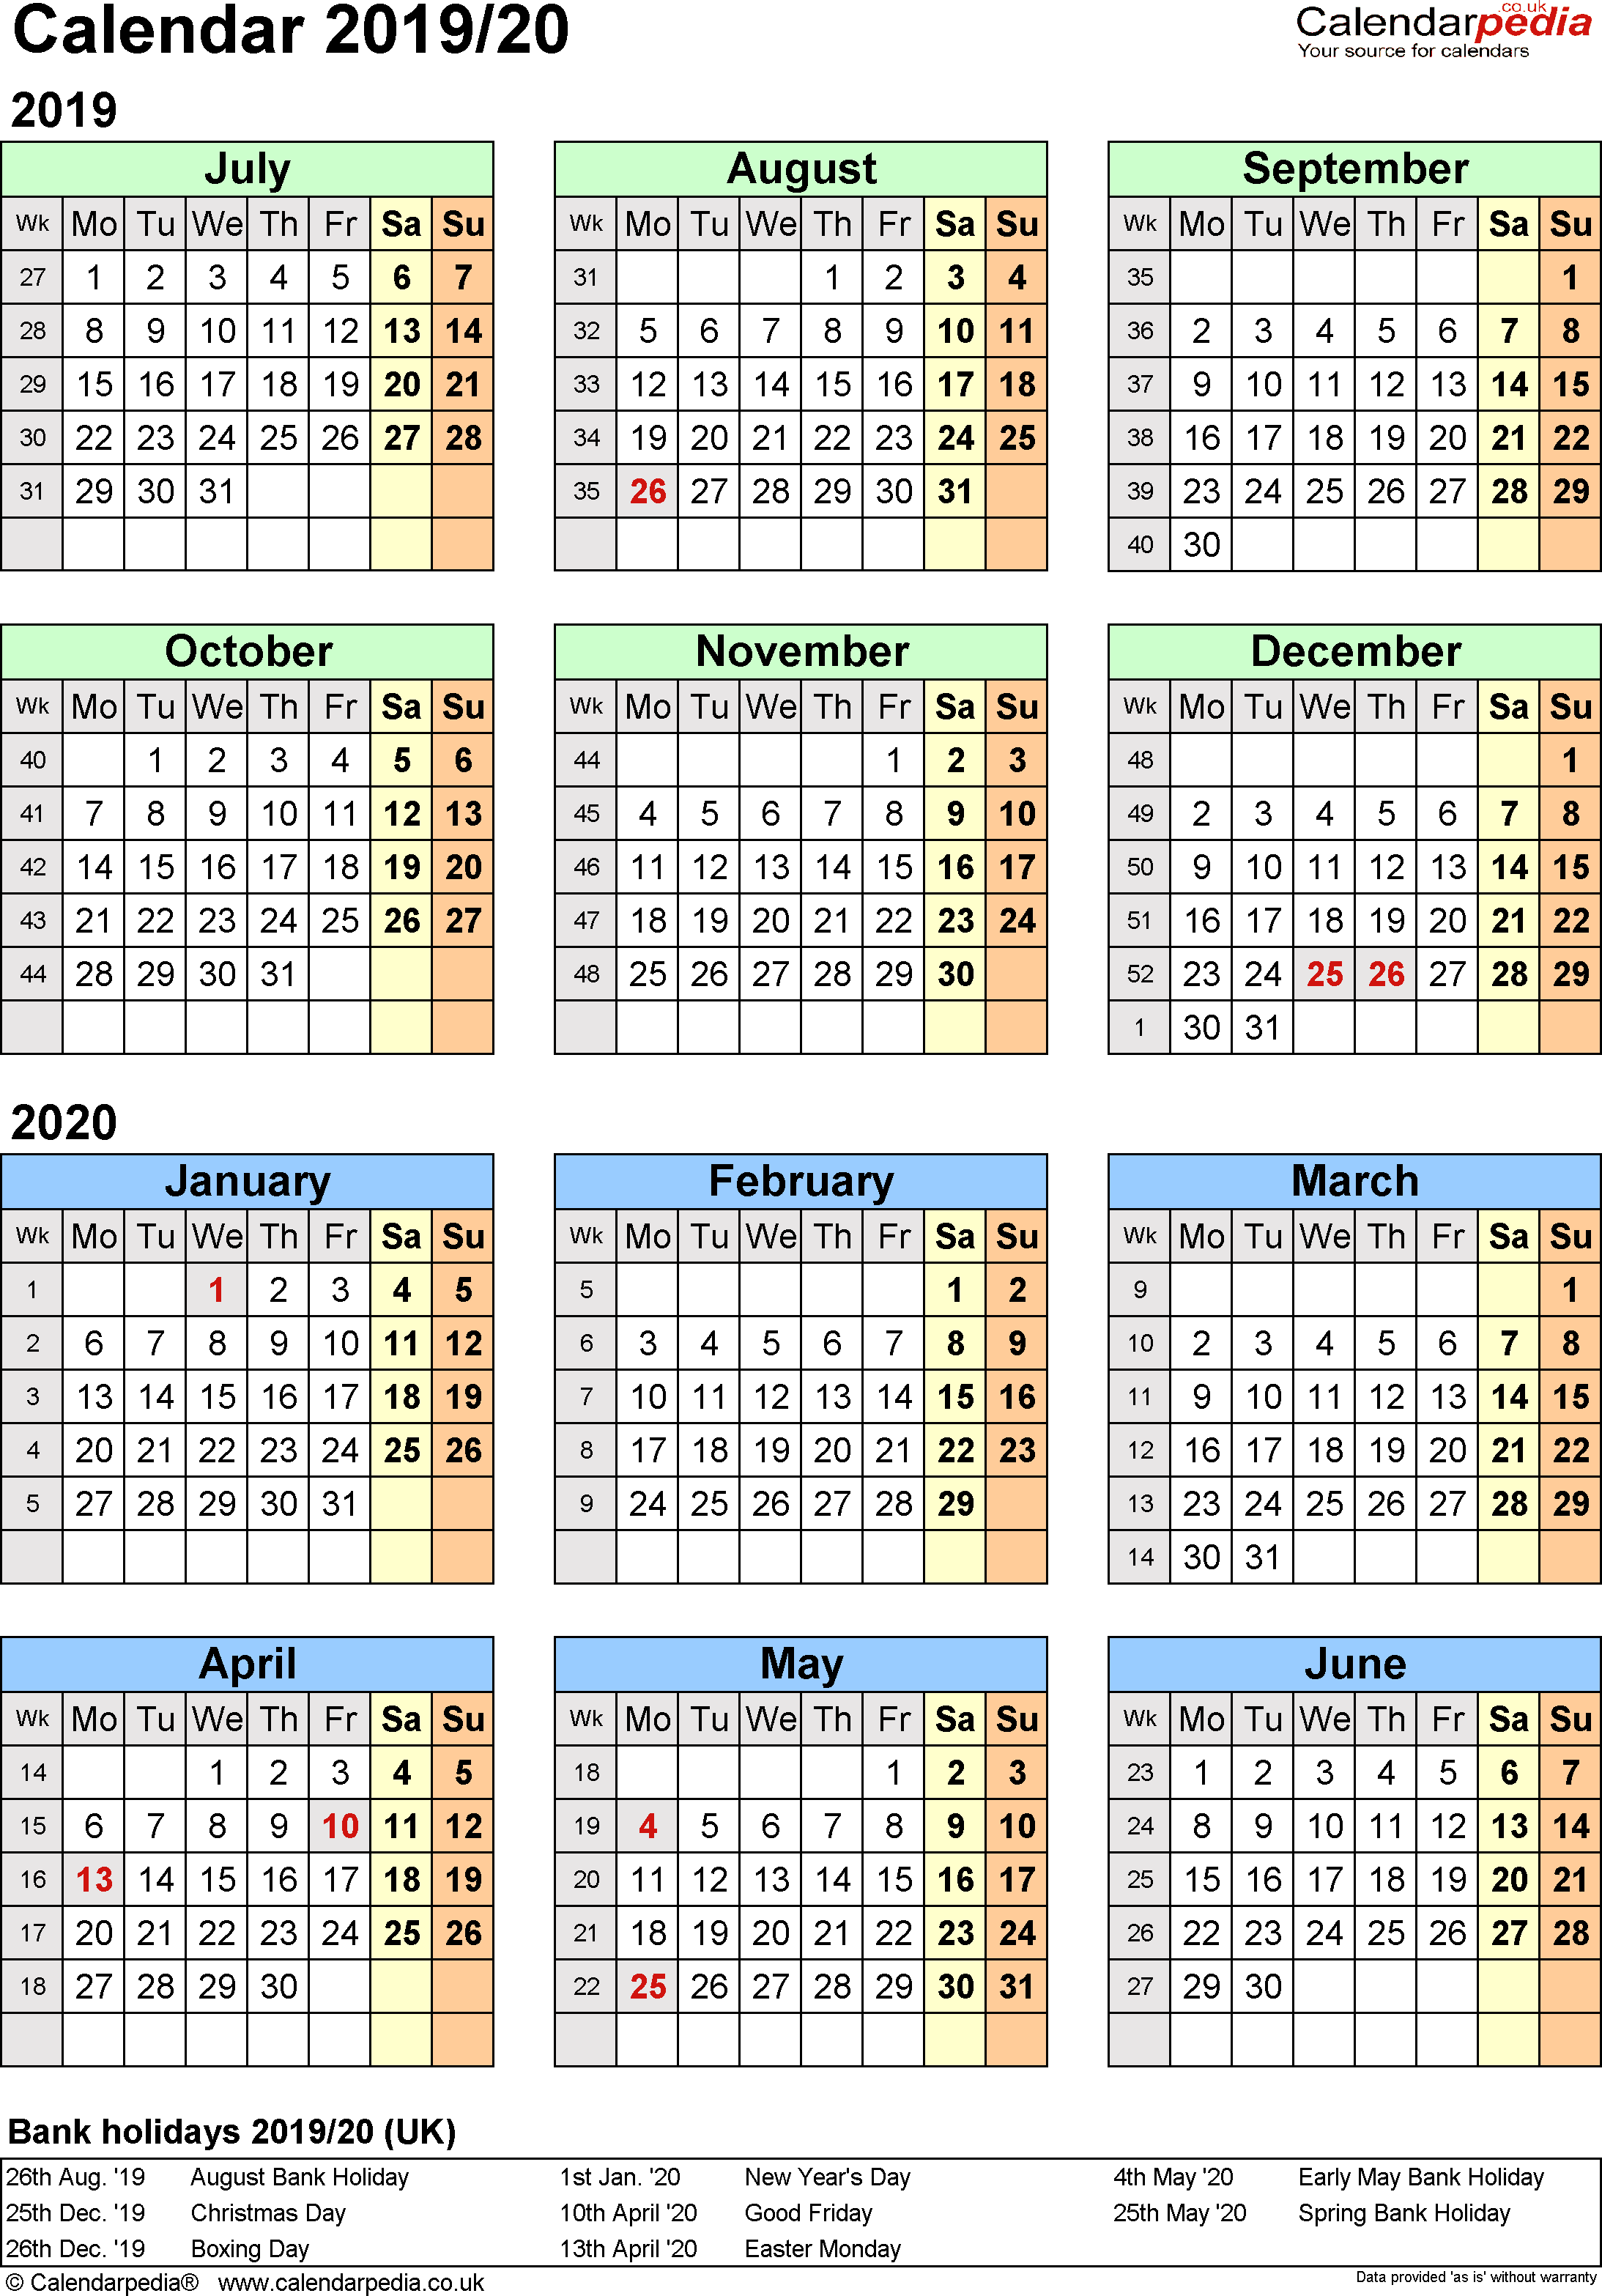 Template 2: Excel template for split year calendar 2019/2020 (portrait orientation, 1 page, A4)